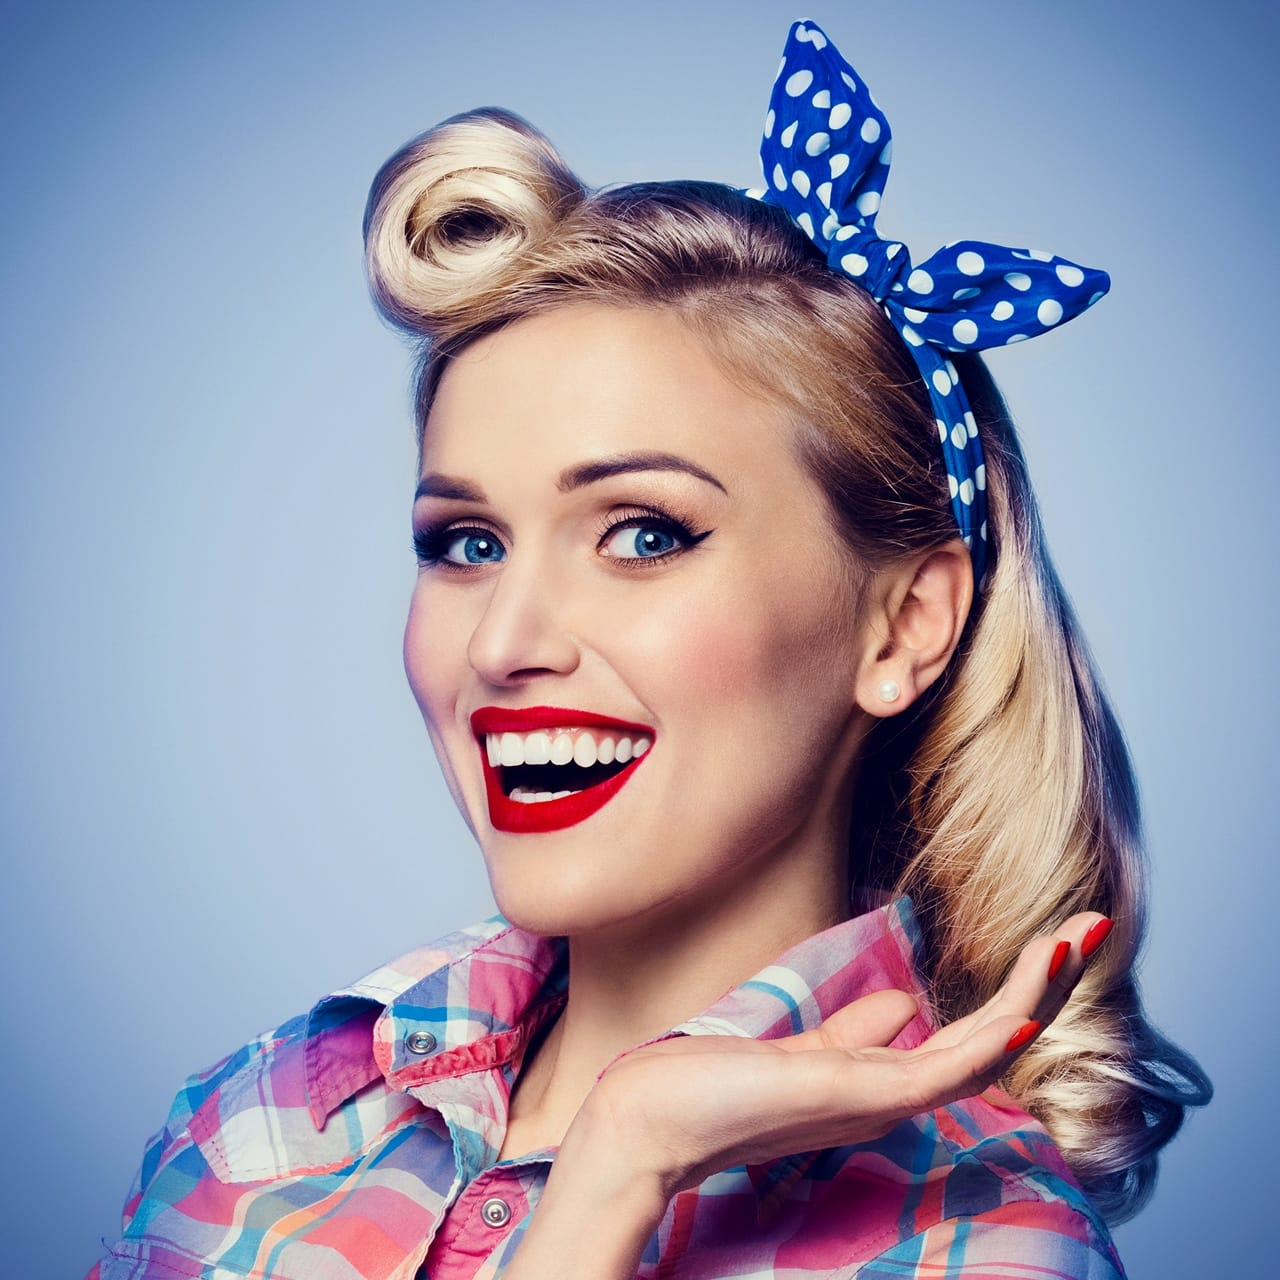 young woman dressed in pin-up style